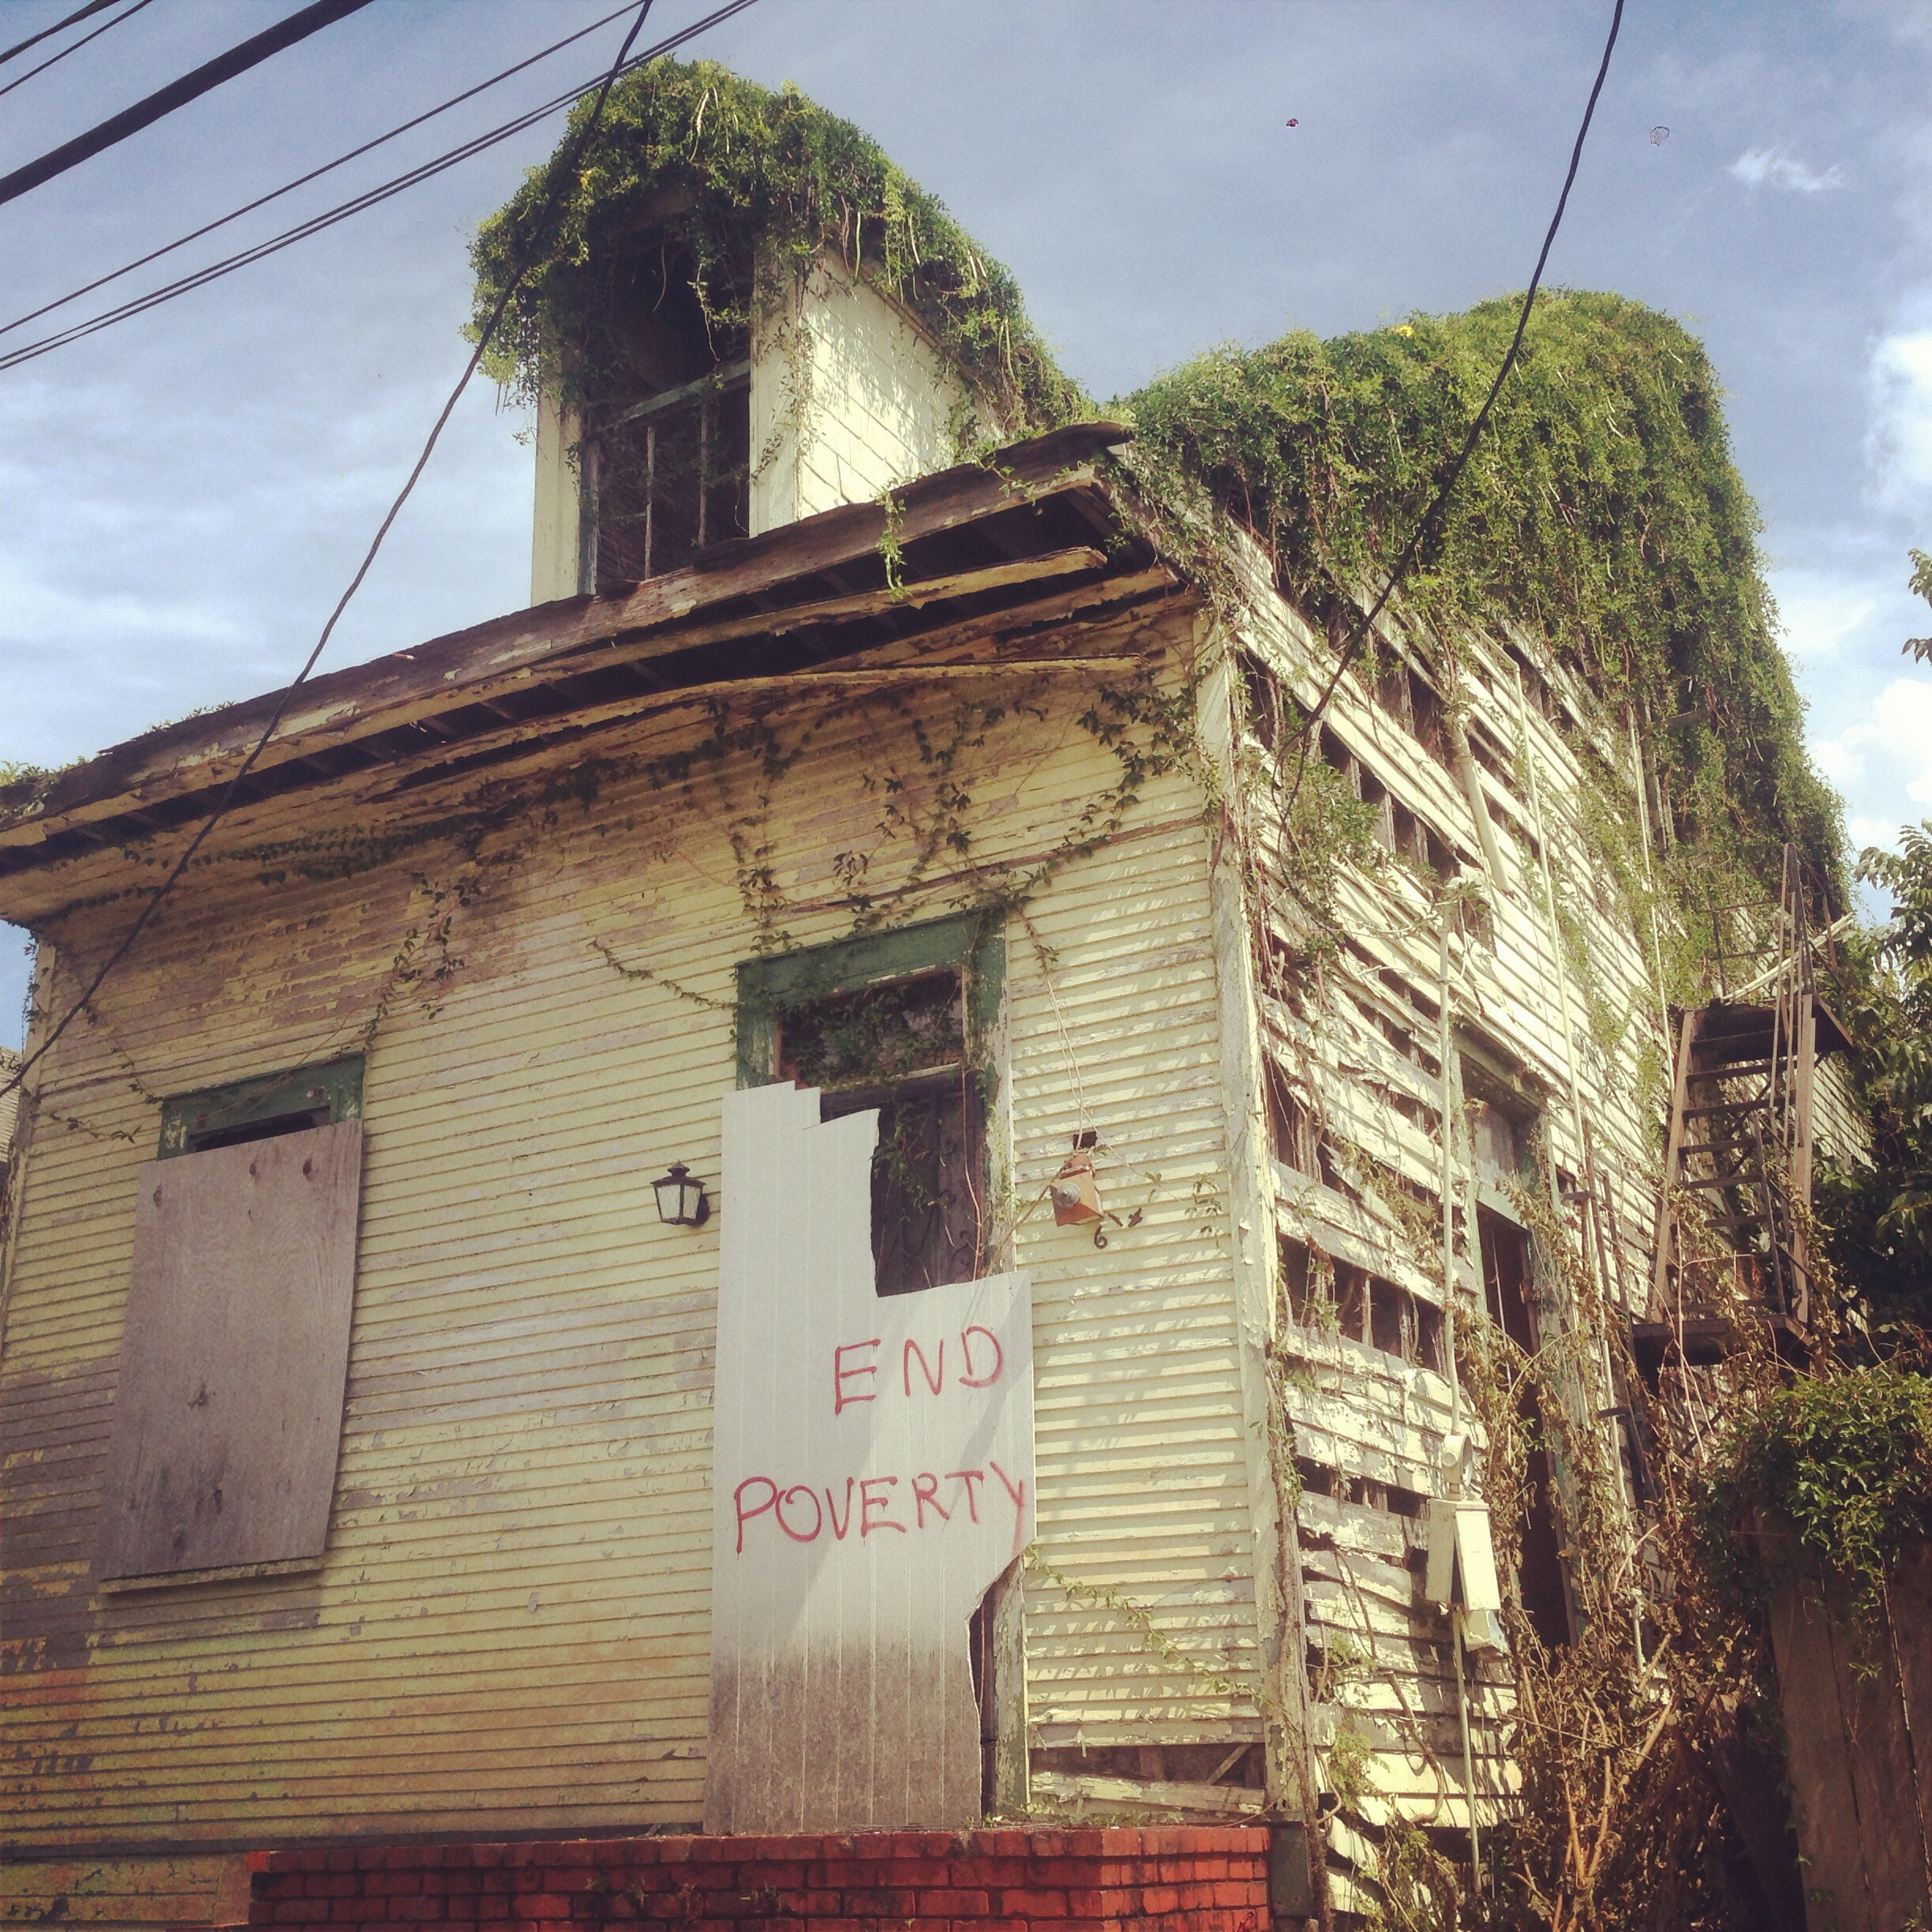 An abandoned house in Treme